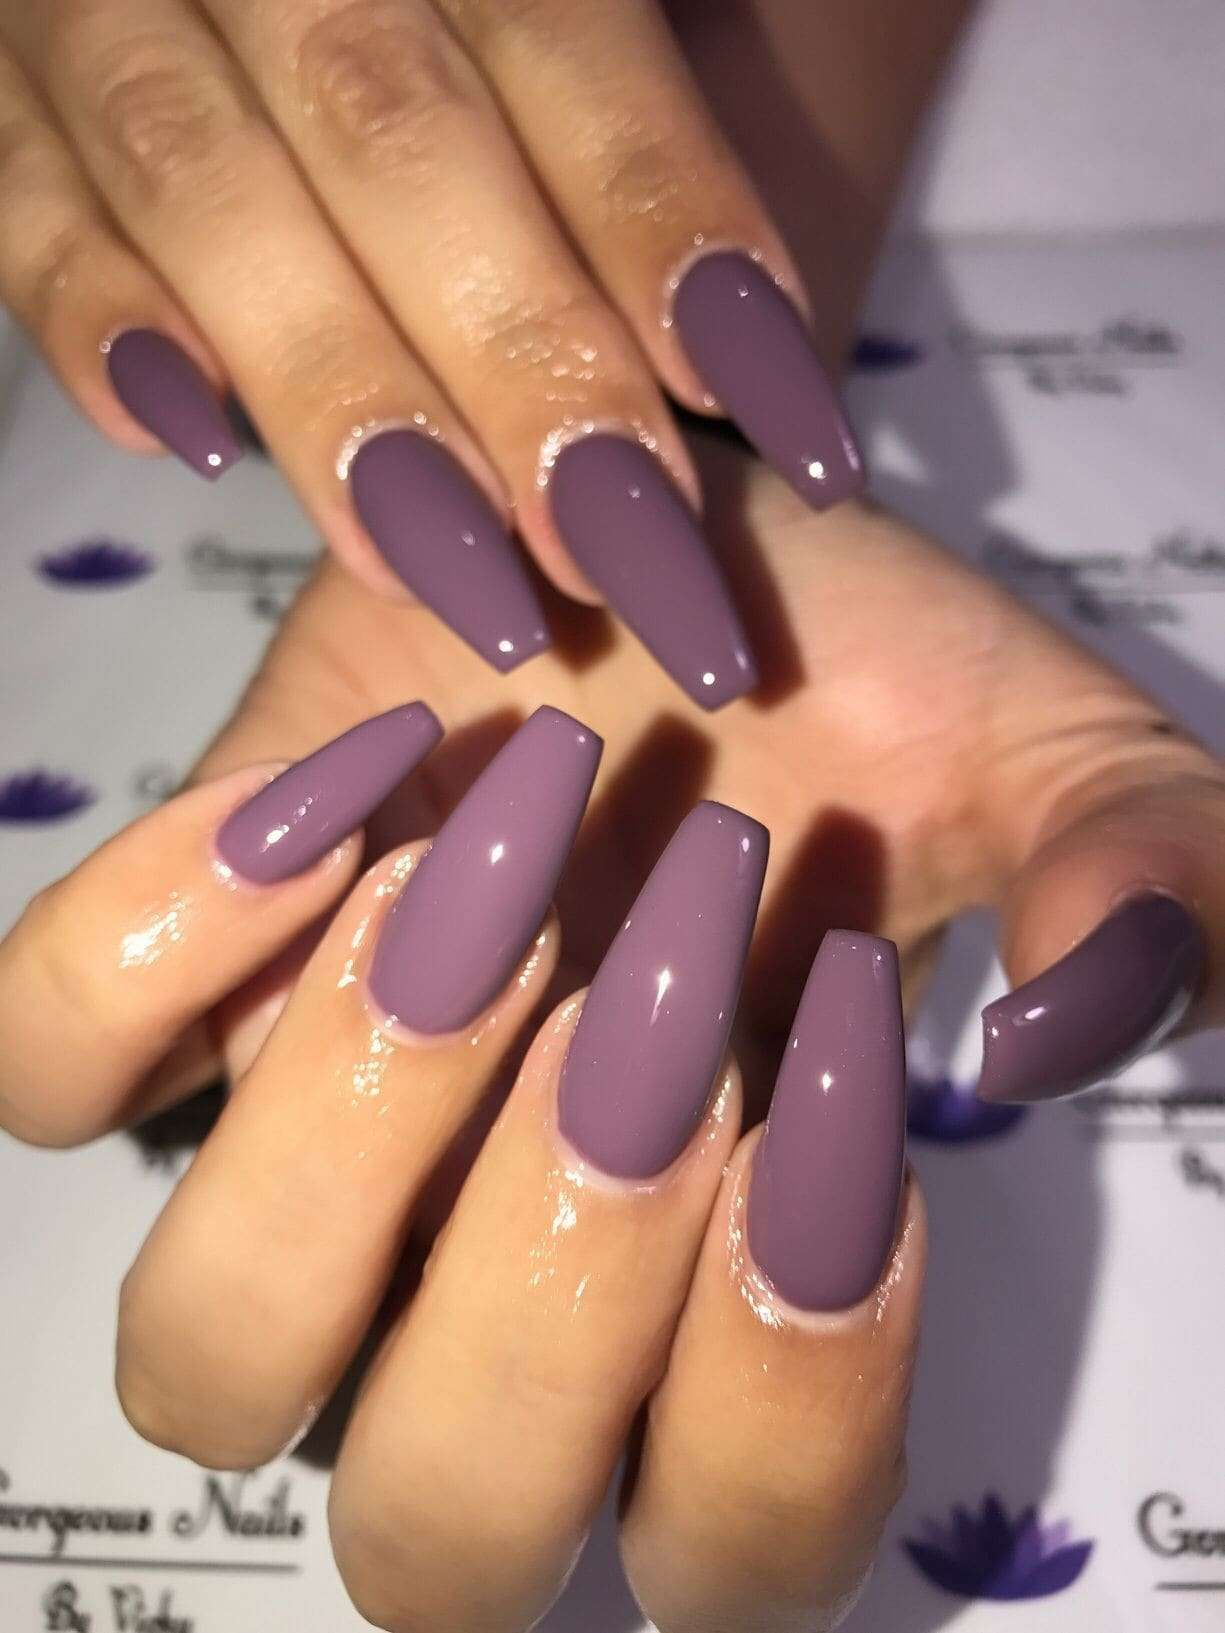 Coffin Nail Colors Best Of Acrylic Nails Colors For Fall Acbc Fitnailslover Of Coffin Nail Colors coffin nail colors best of acrylic nails colors for fall acbc fitnailslover of coffin nail colors Fall Nails fall nails coffin